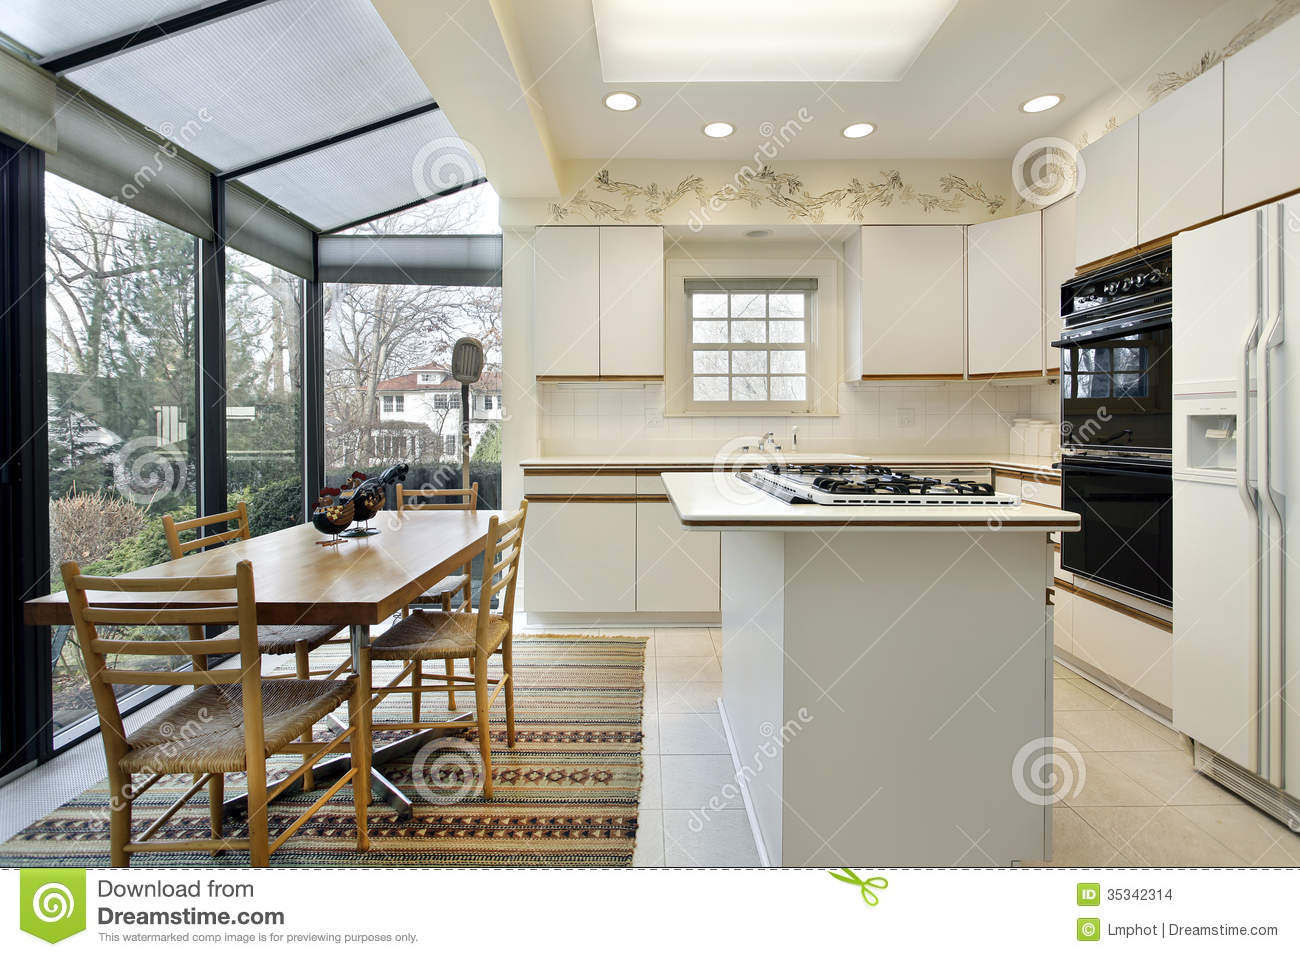 Kitchen With Sliding Doors To Patio Stock Images - Image: 35342314